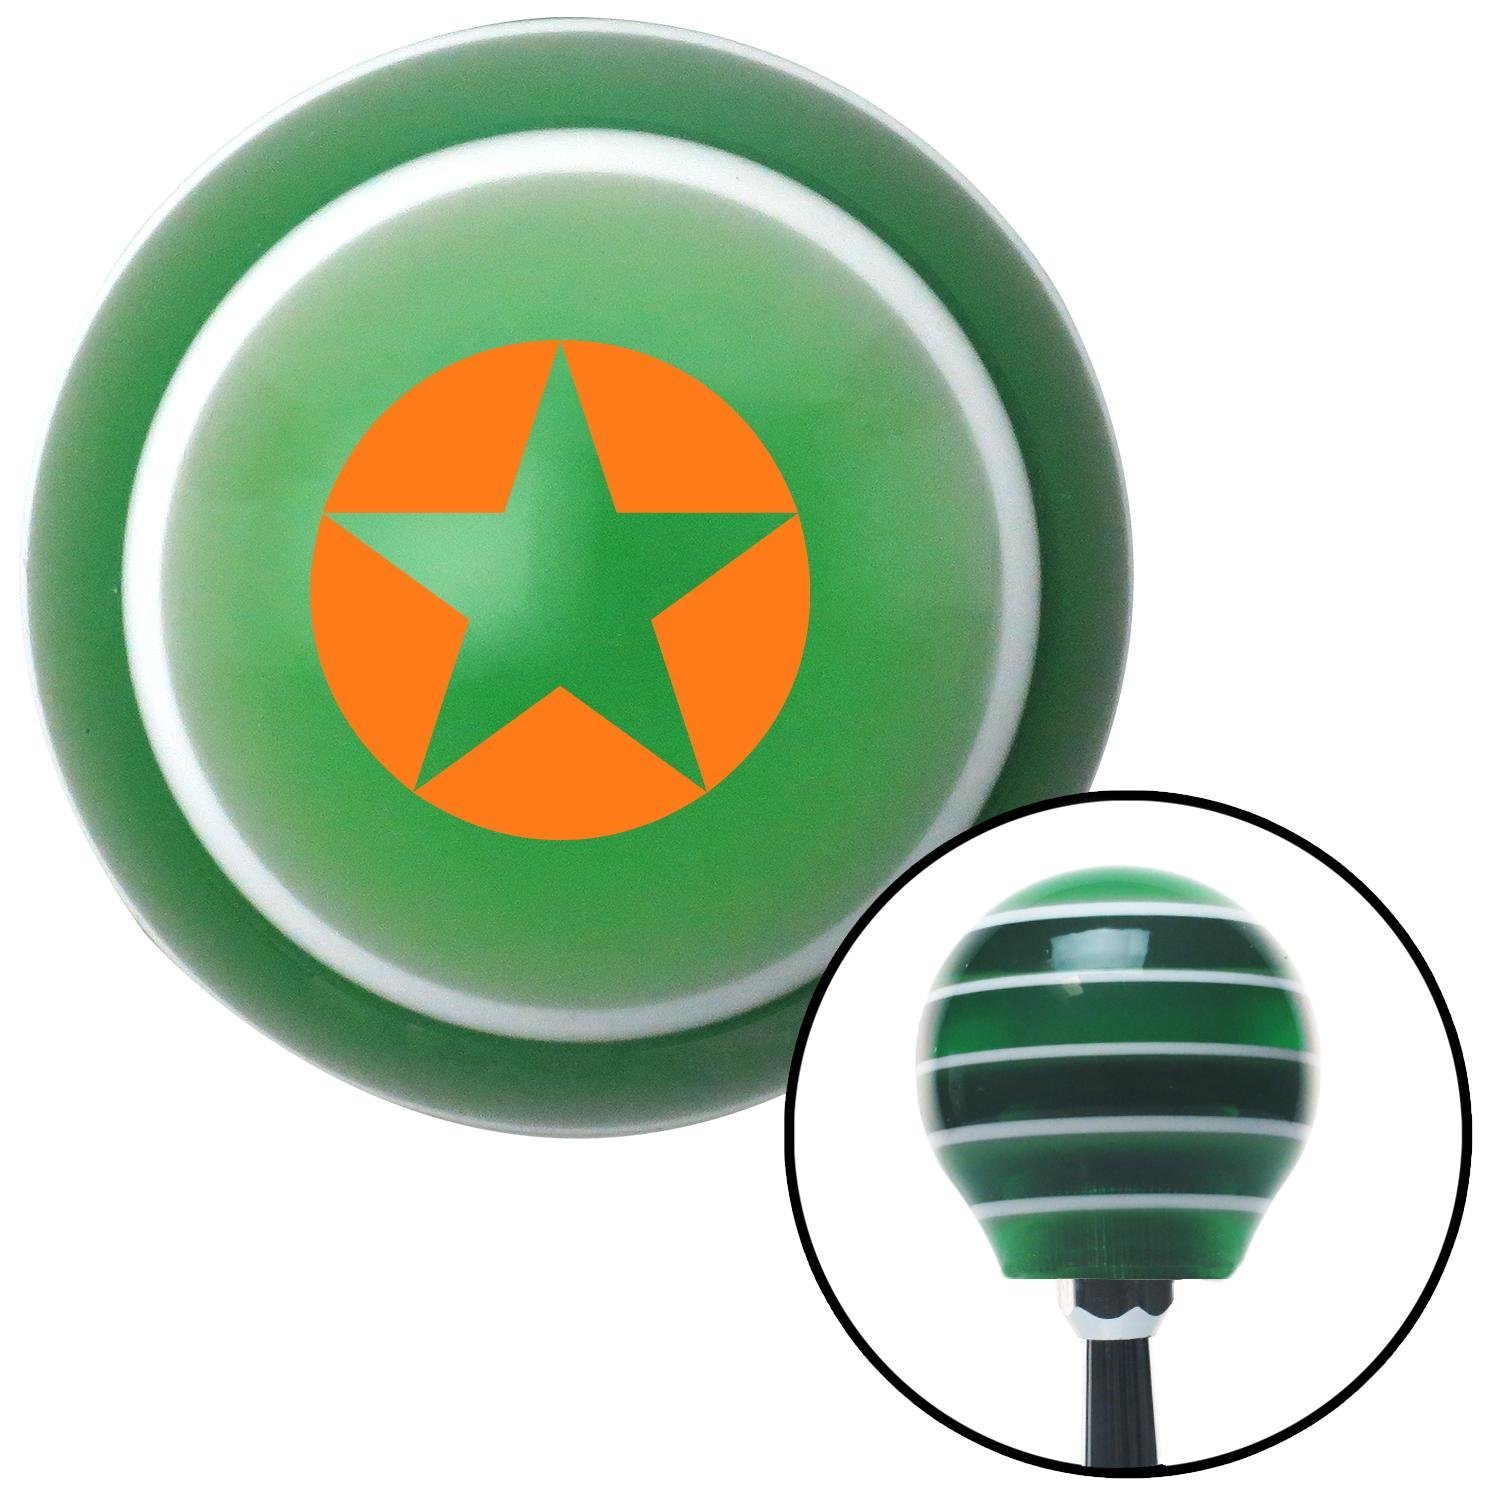 Orange Star in Circle Outline American Shifter 128368 Green Stripe Shift Knob with M16 x 1.5 Insert